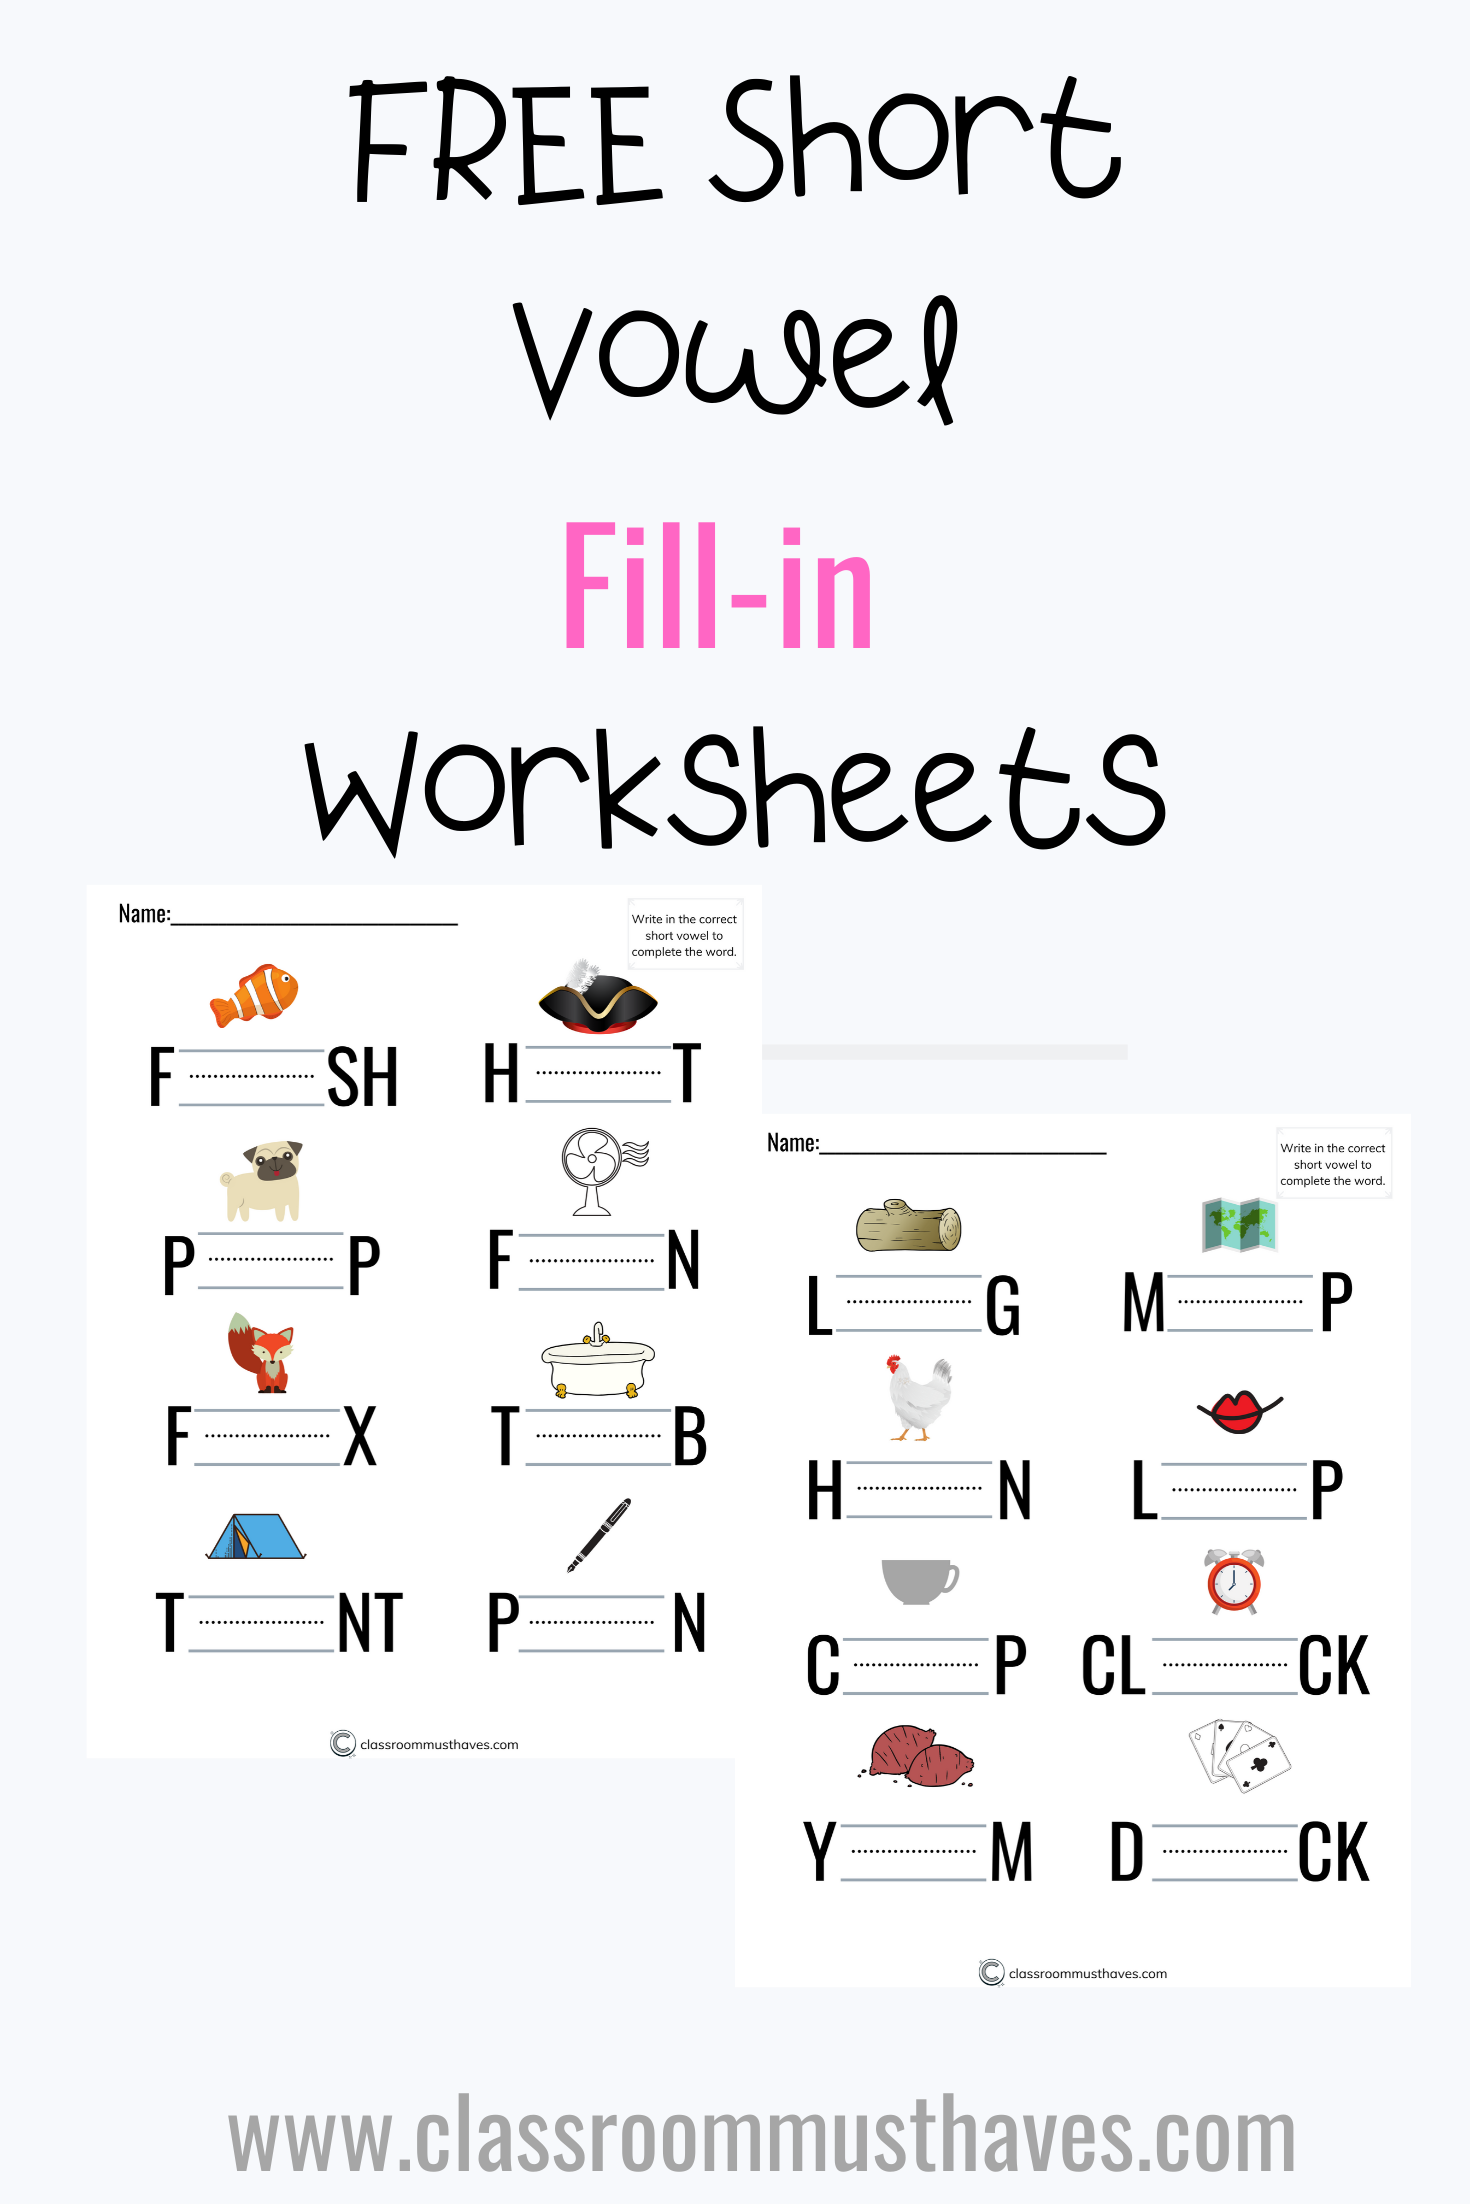 Free Short Vowel Review Worksheets In